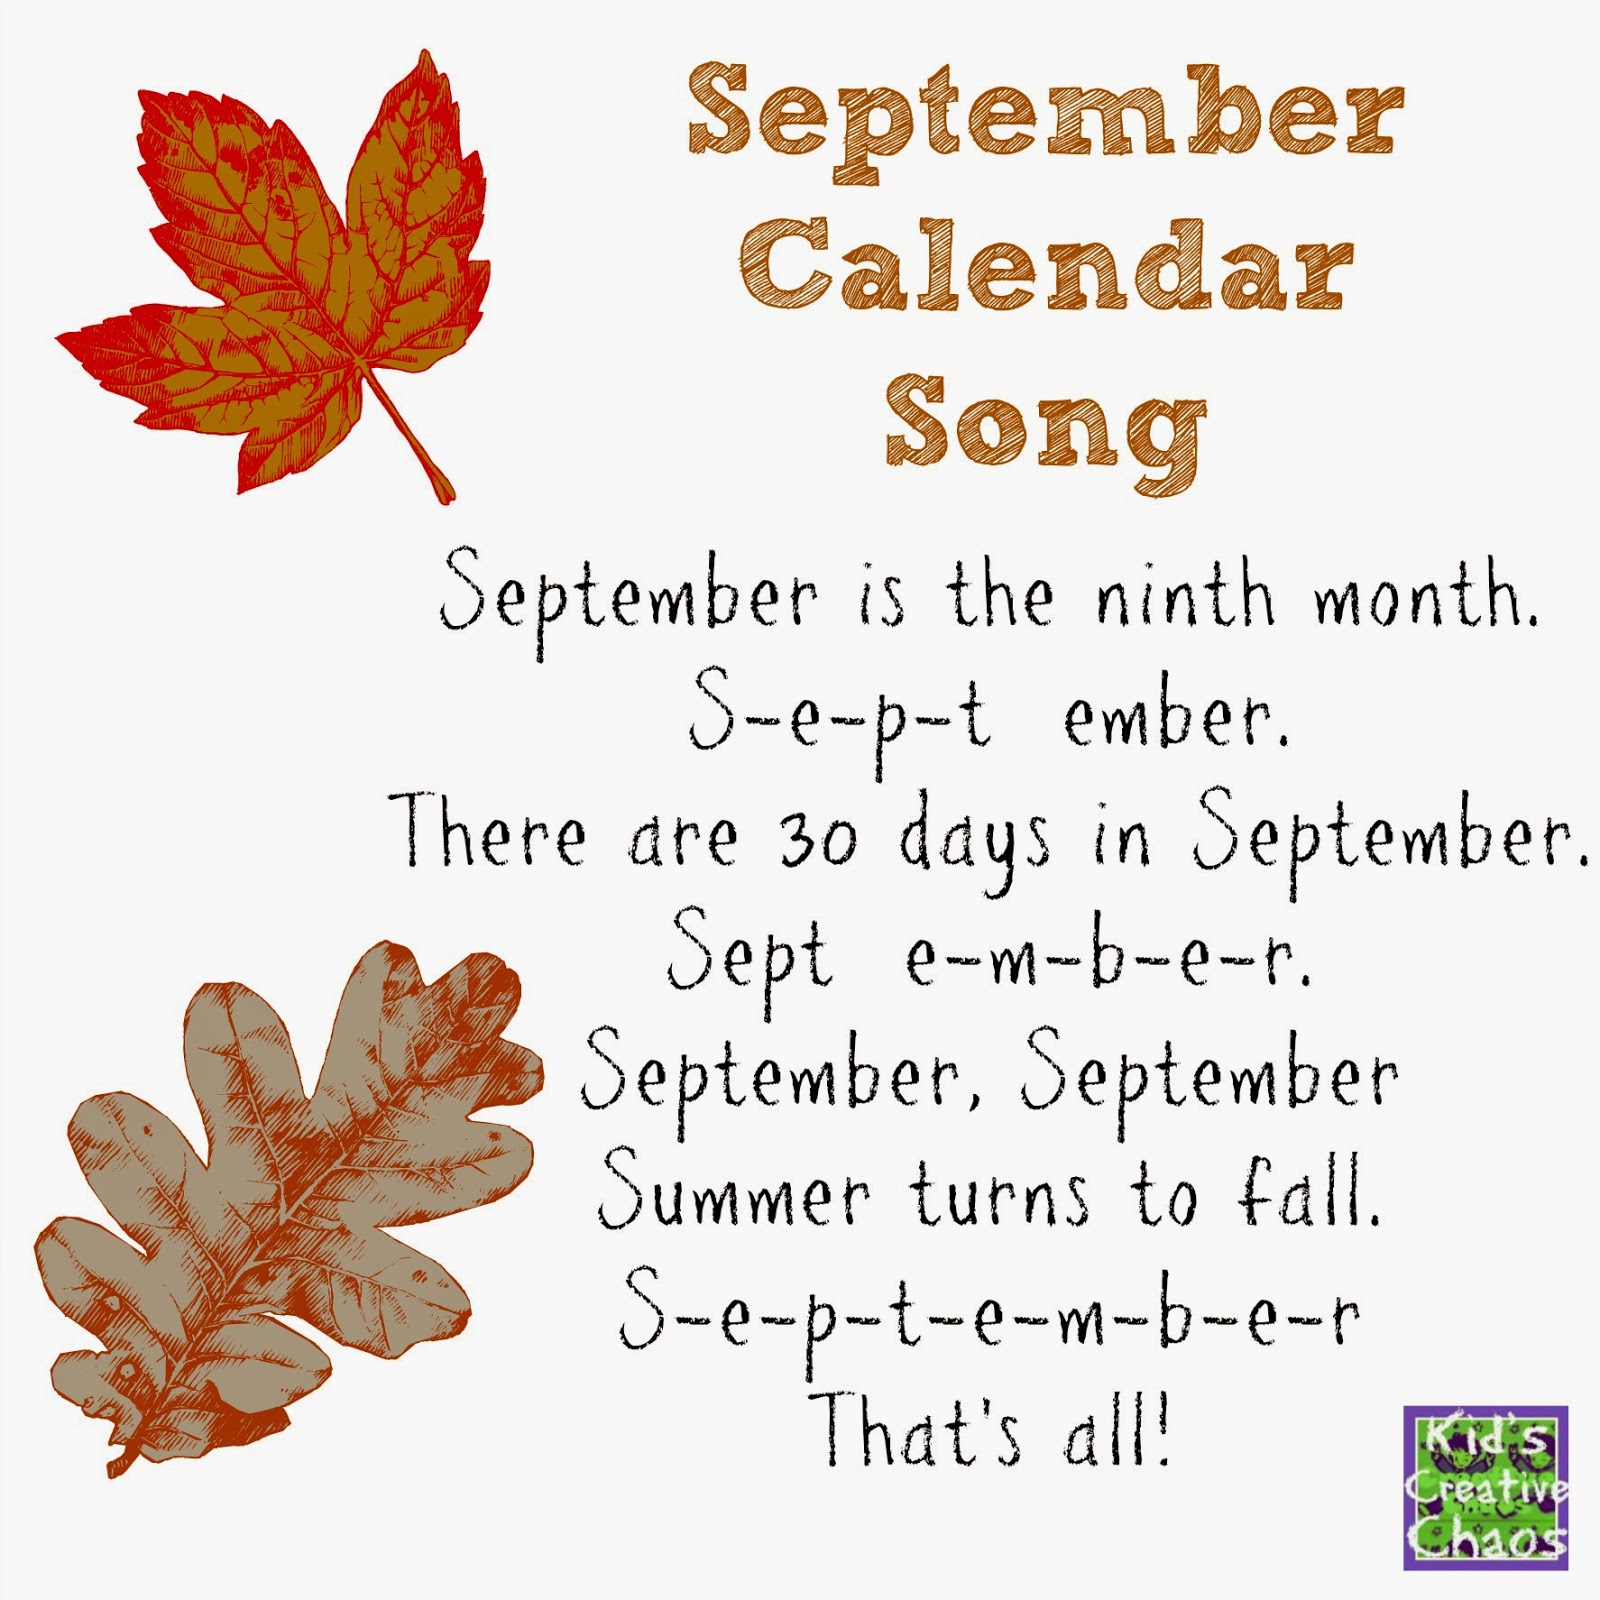 September Calendar of Special Days and Holidays with Song